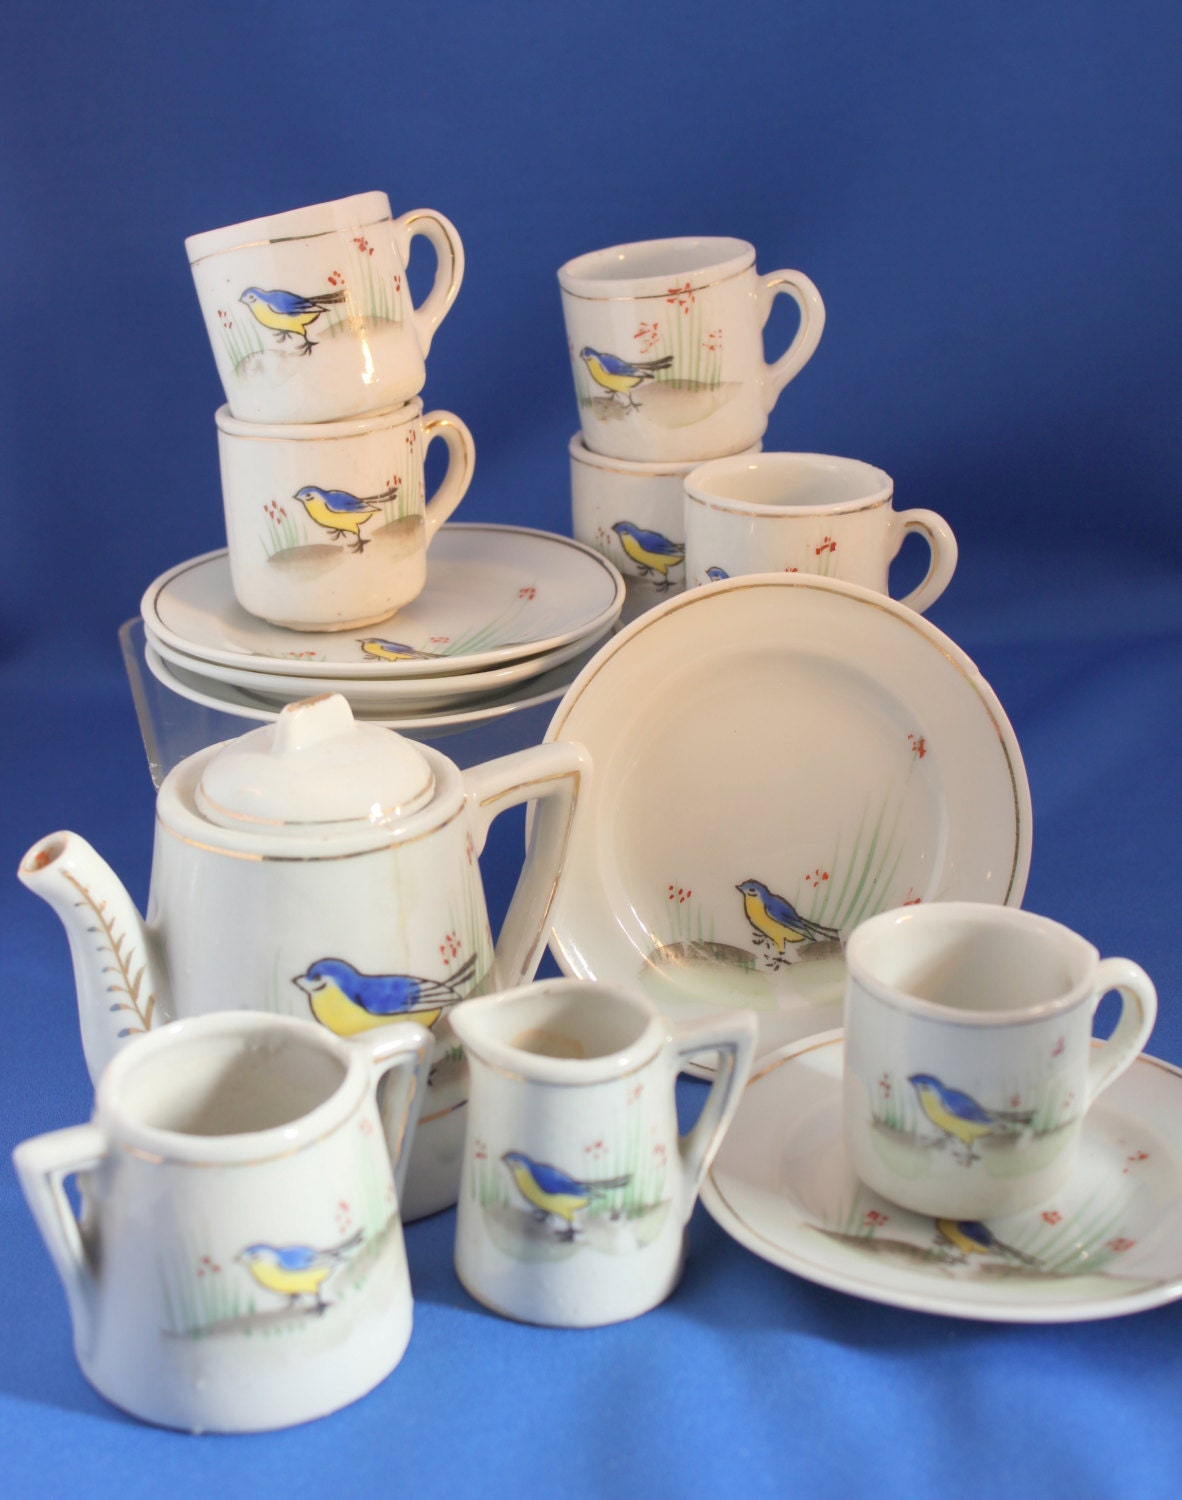 Toy Tea Set : Blue bird childs tea set toy dishes made japan